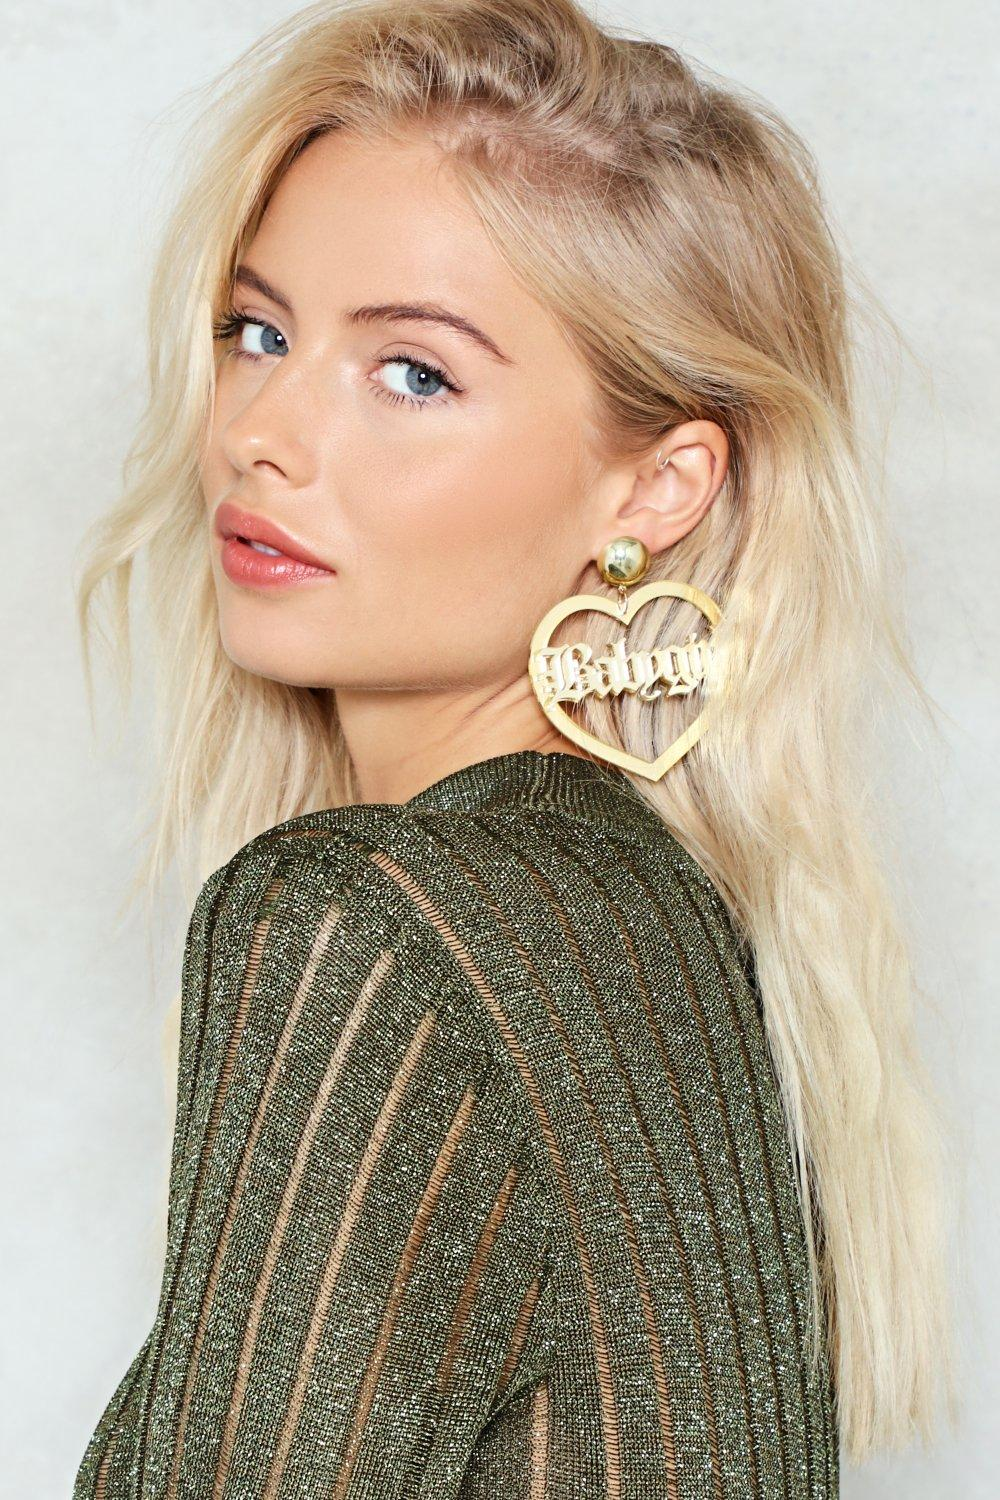 bbd9cafb448c6 Baby Girl Earrings | Shop Clothes at Nasty Gal!